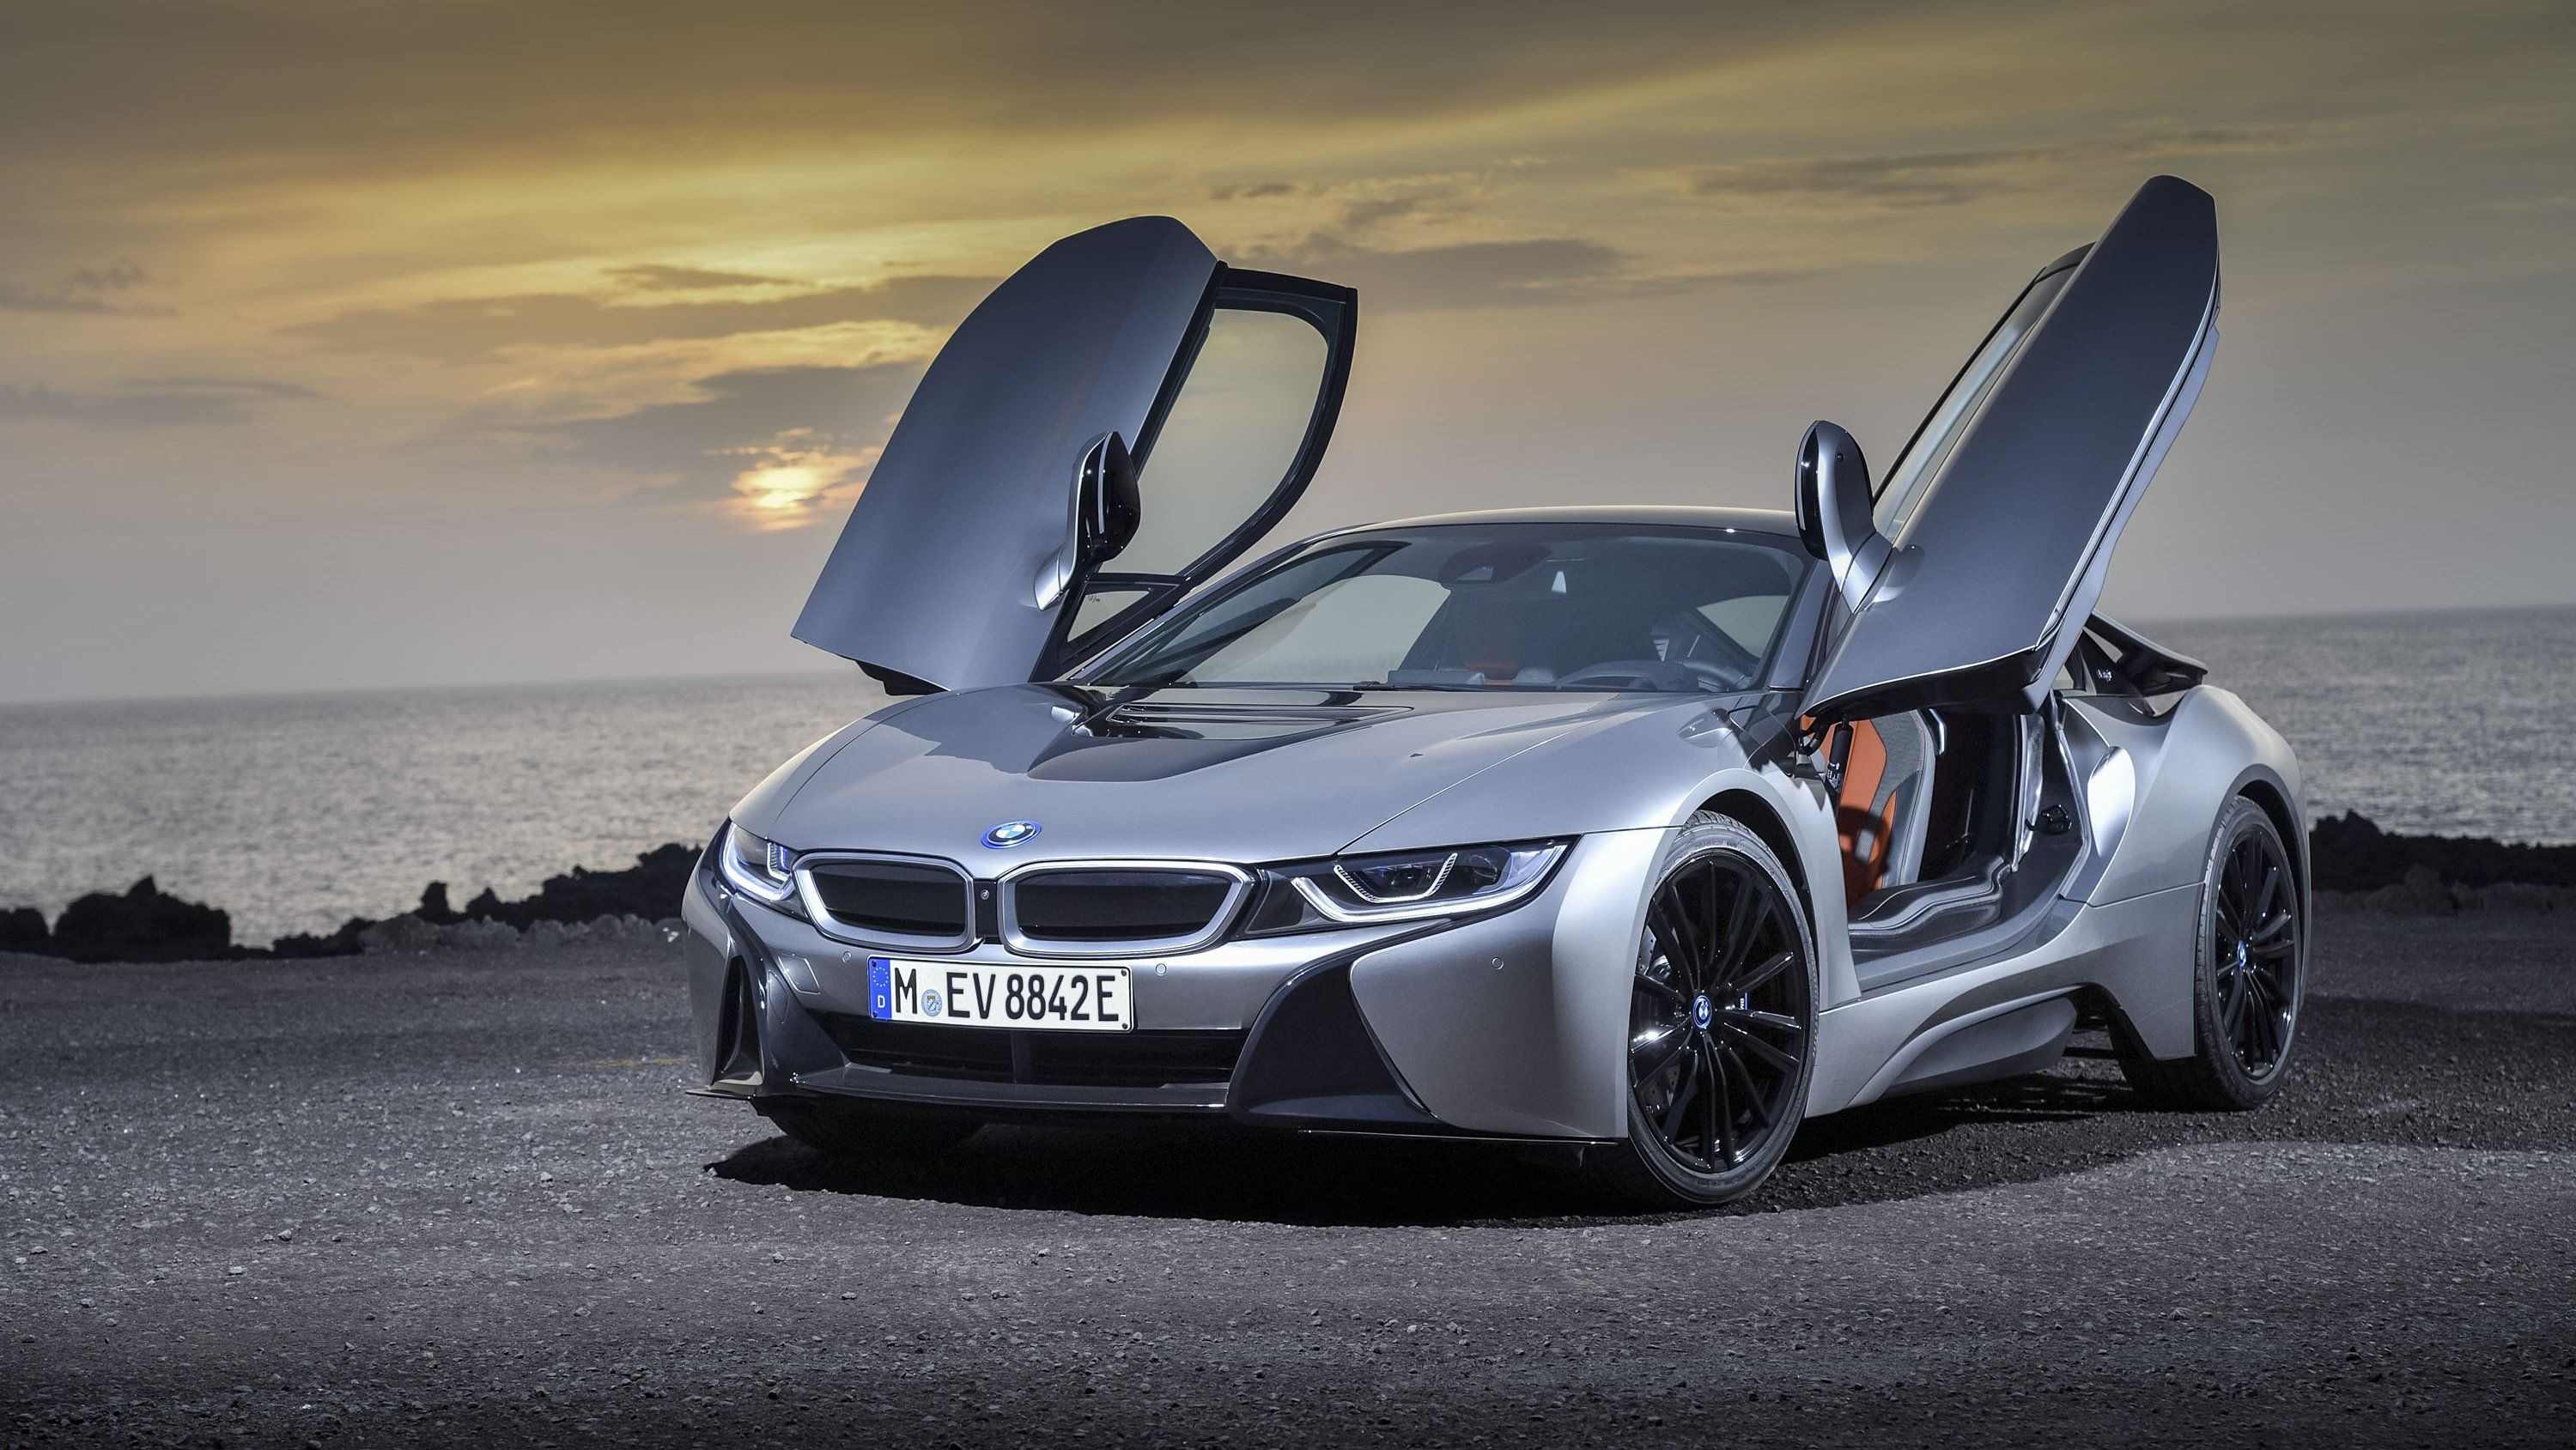 Bmw I8 Wallpapers Top Free Bmw I8 Backgrounds Wallpaperaccess